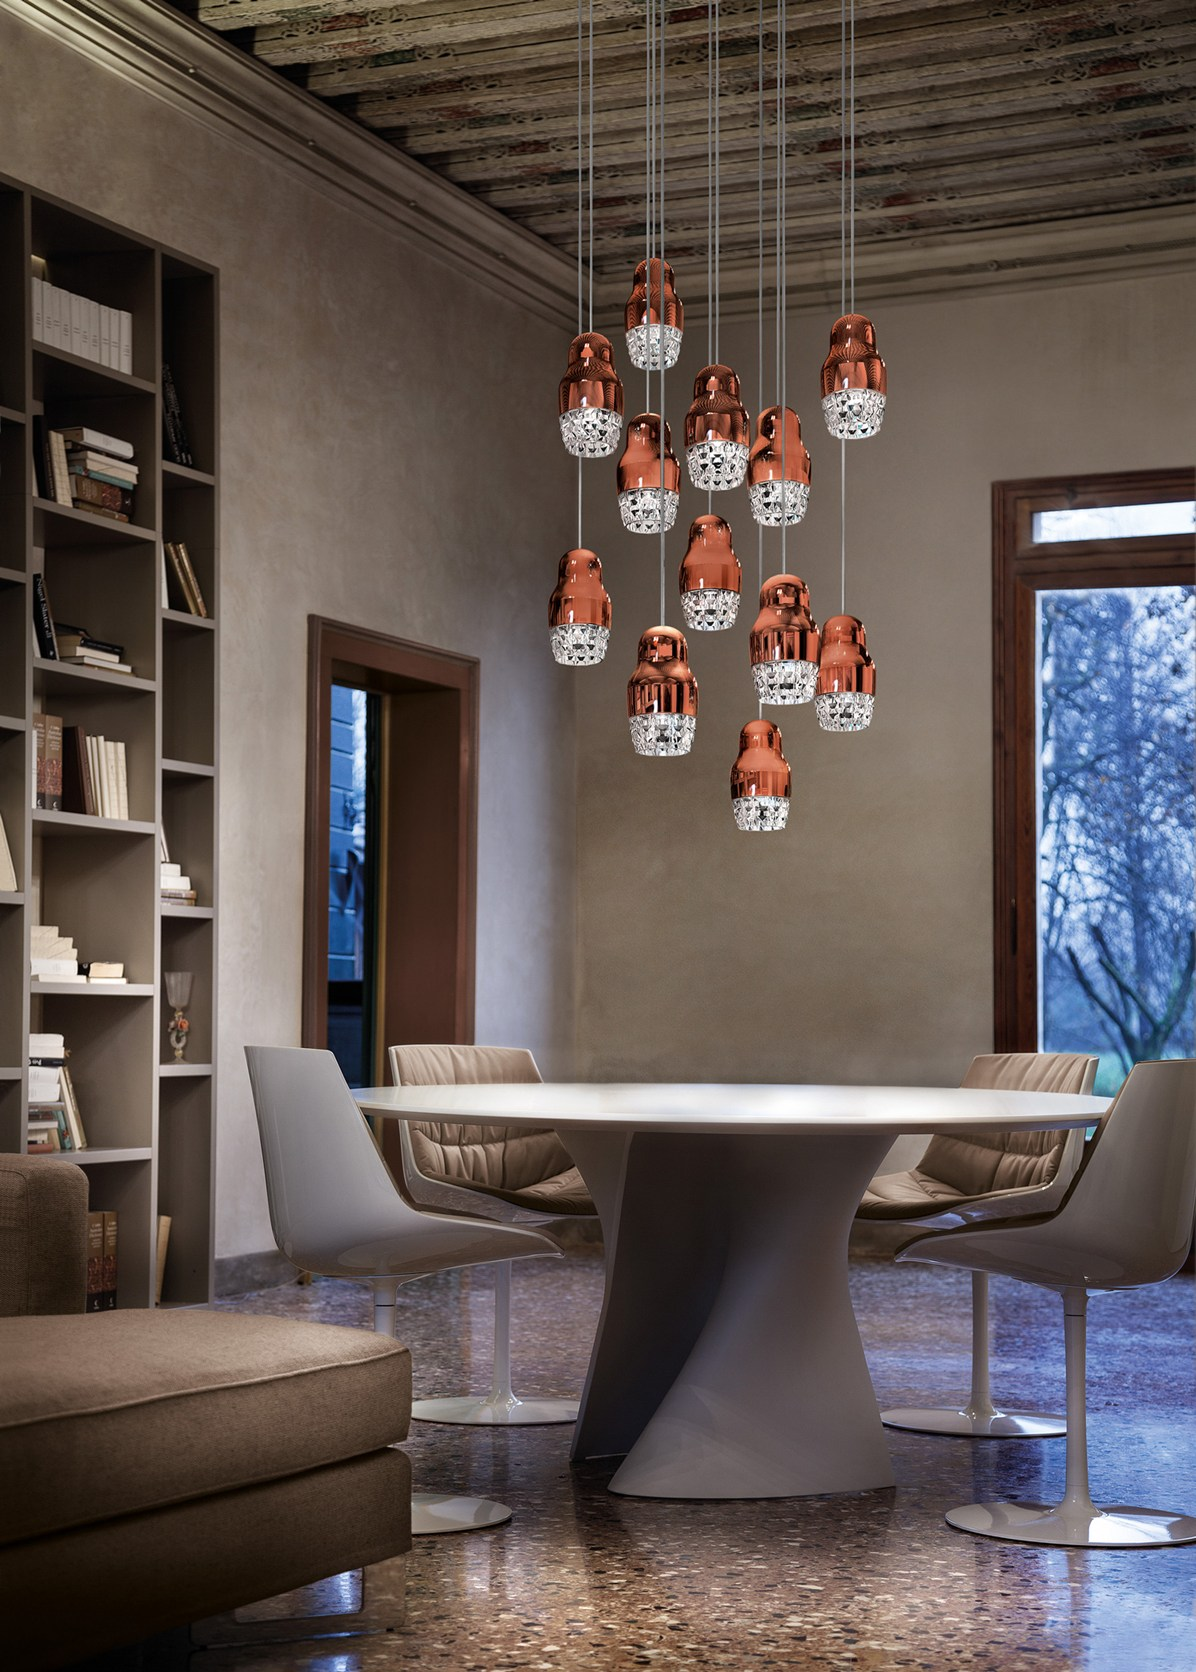 Fedora Hanging Lamps by Dima Loginoff for Axo Light